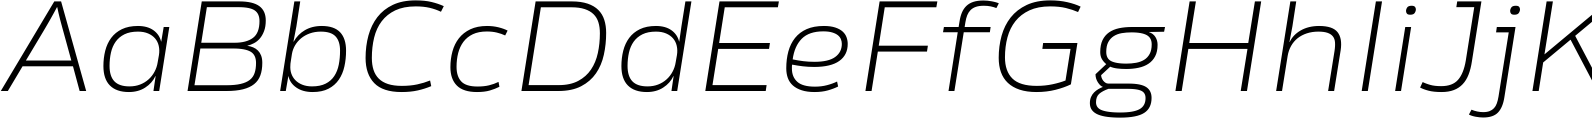 Rleud Extended Extra Light Italic Font